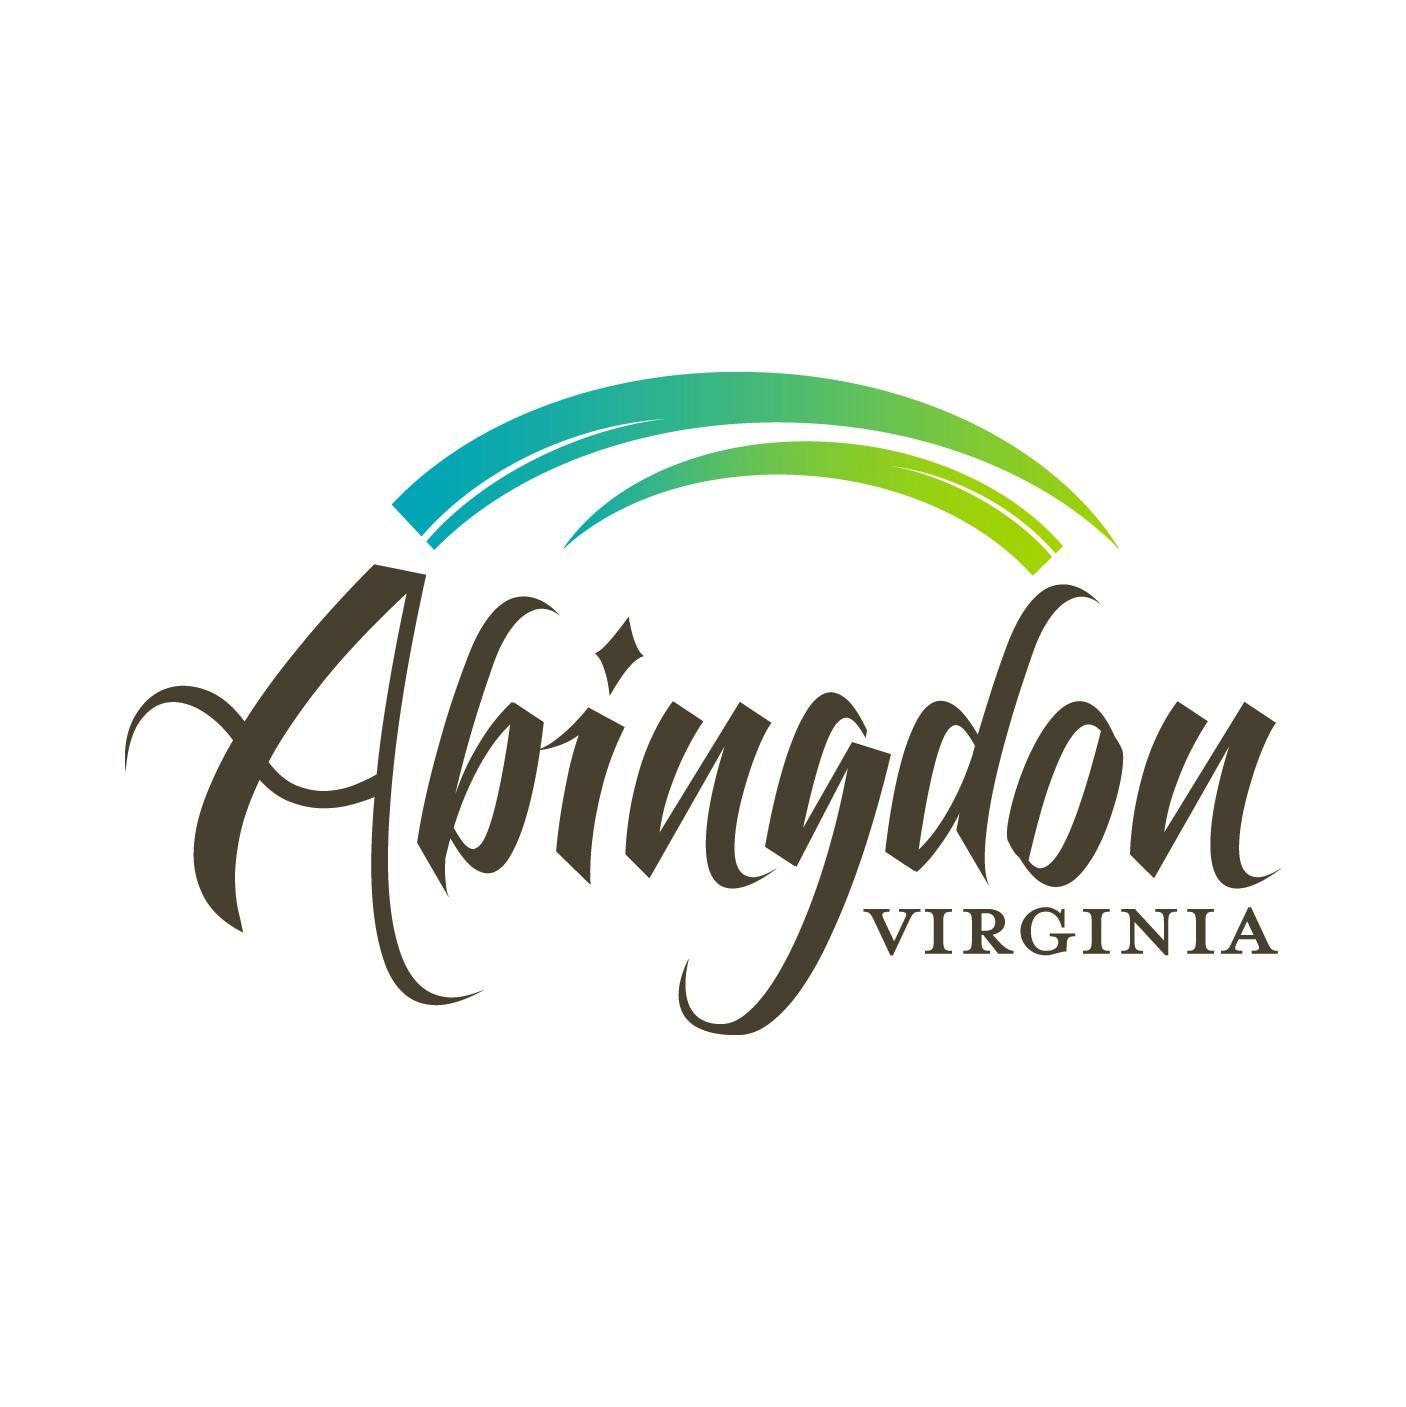 Visit Abingdon Virginia